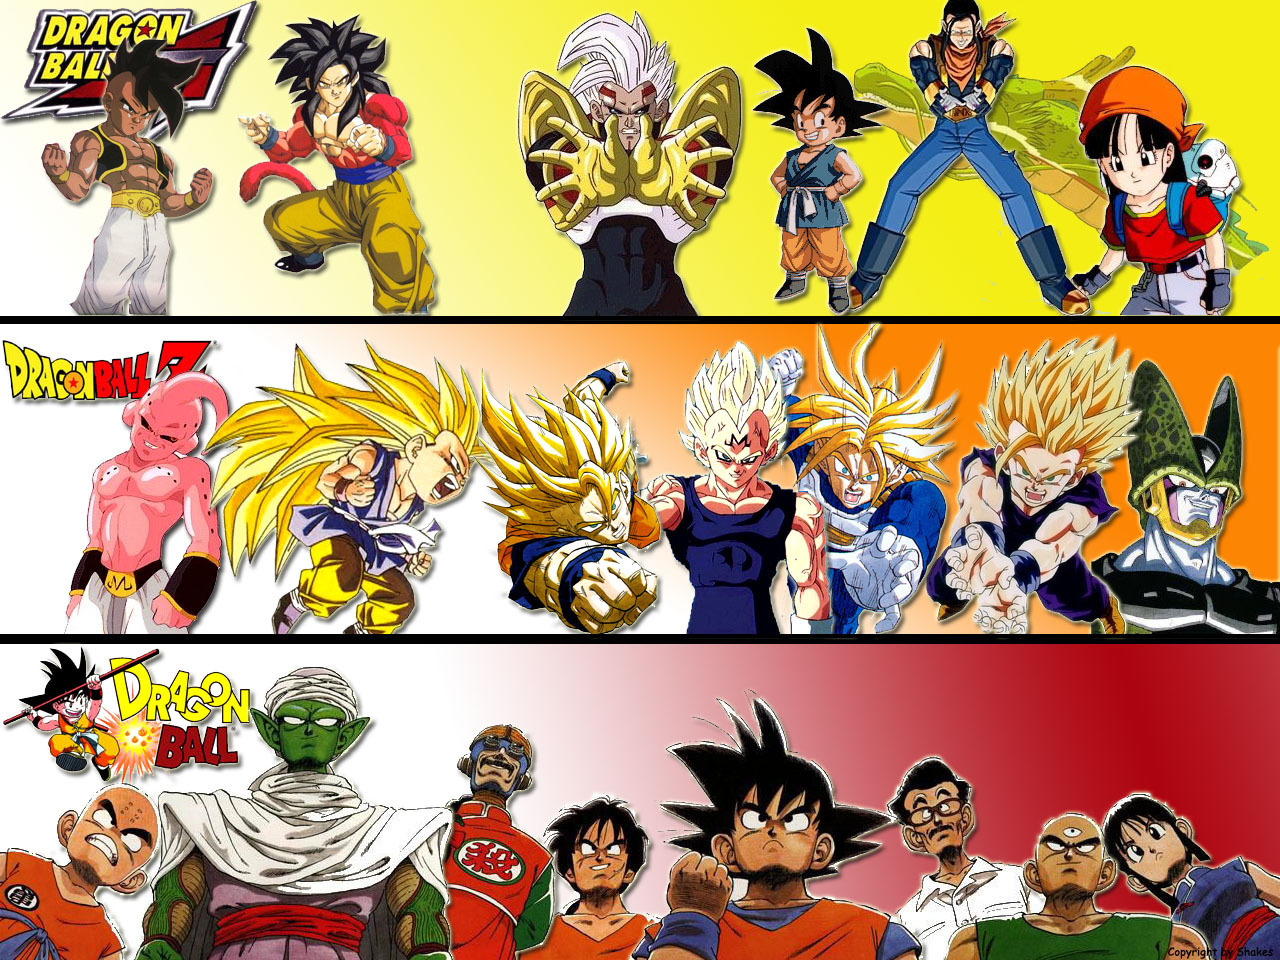 gallery dragon ball z: